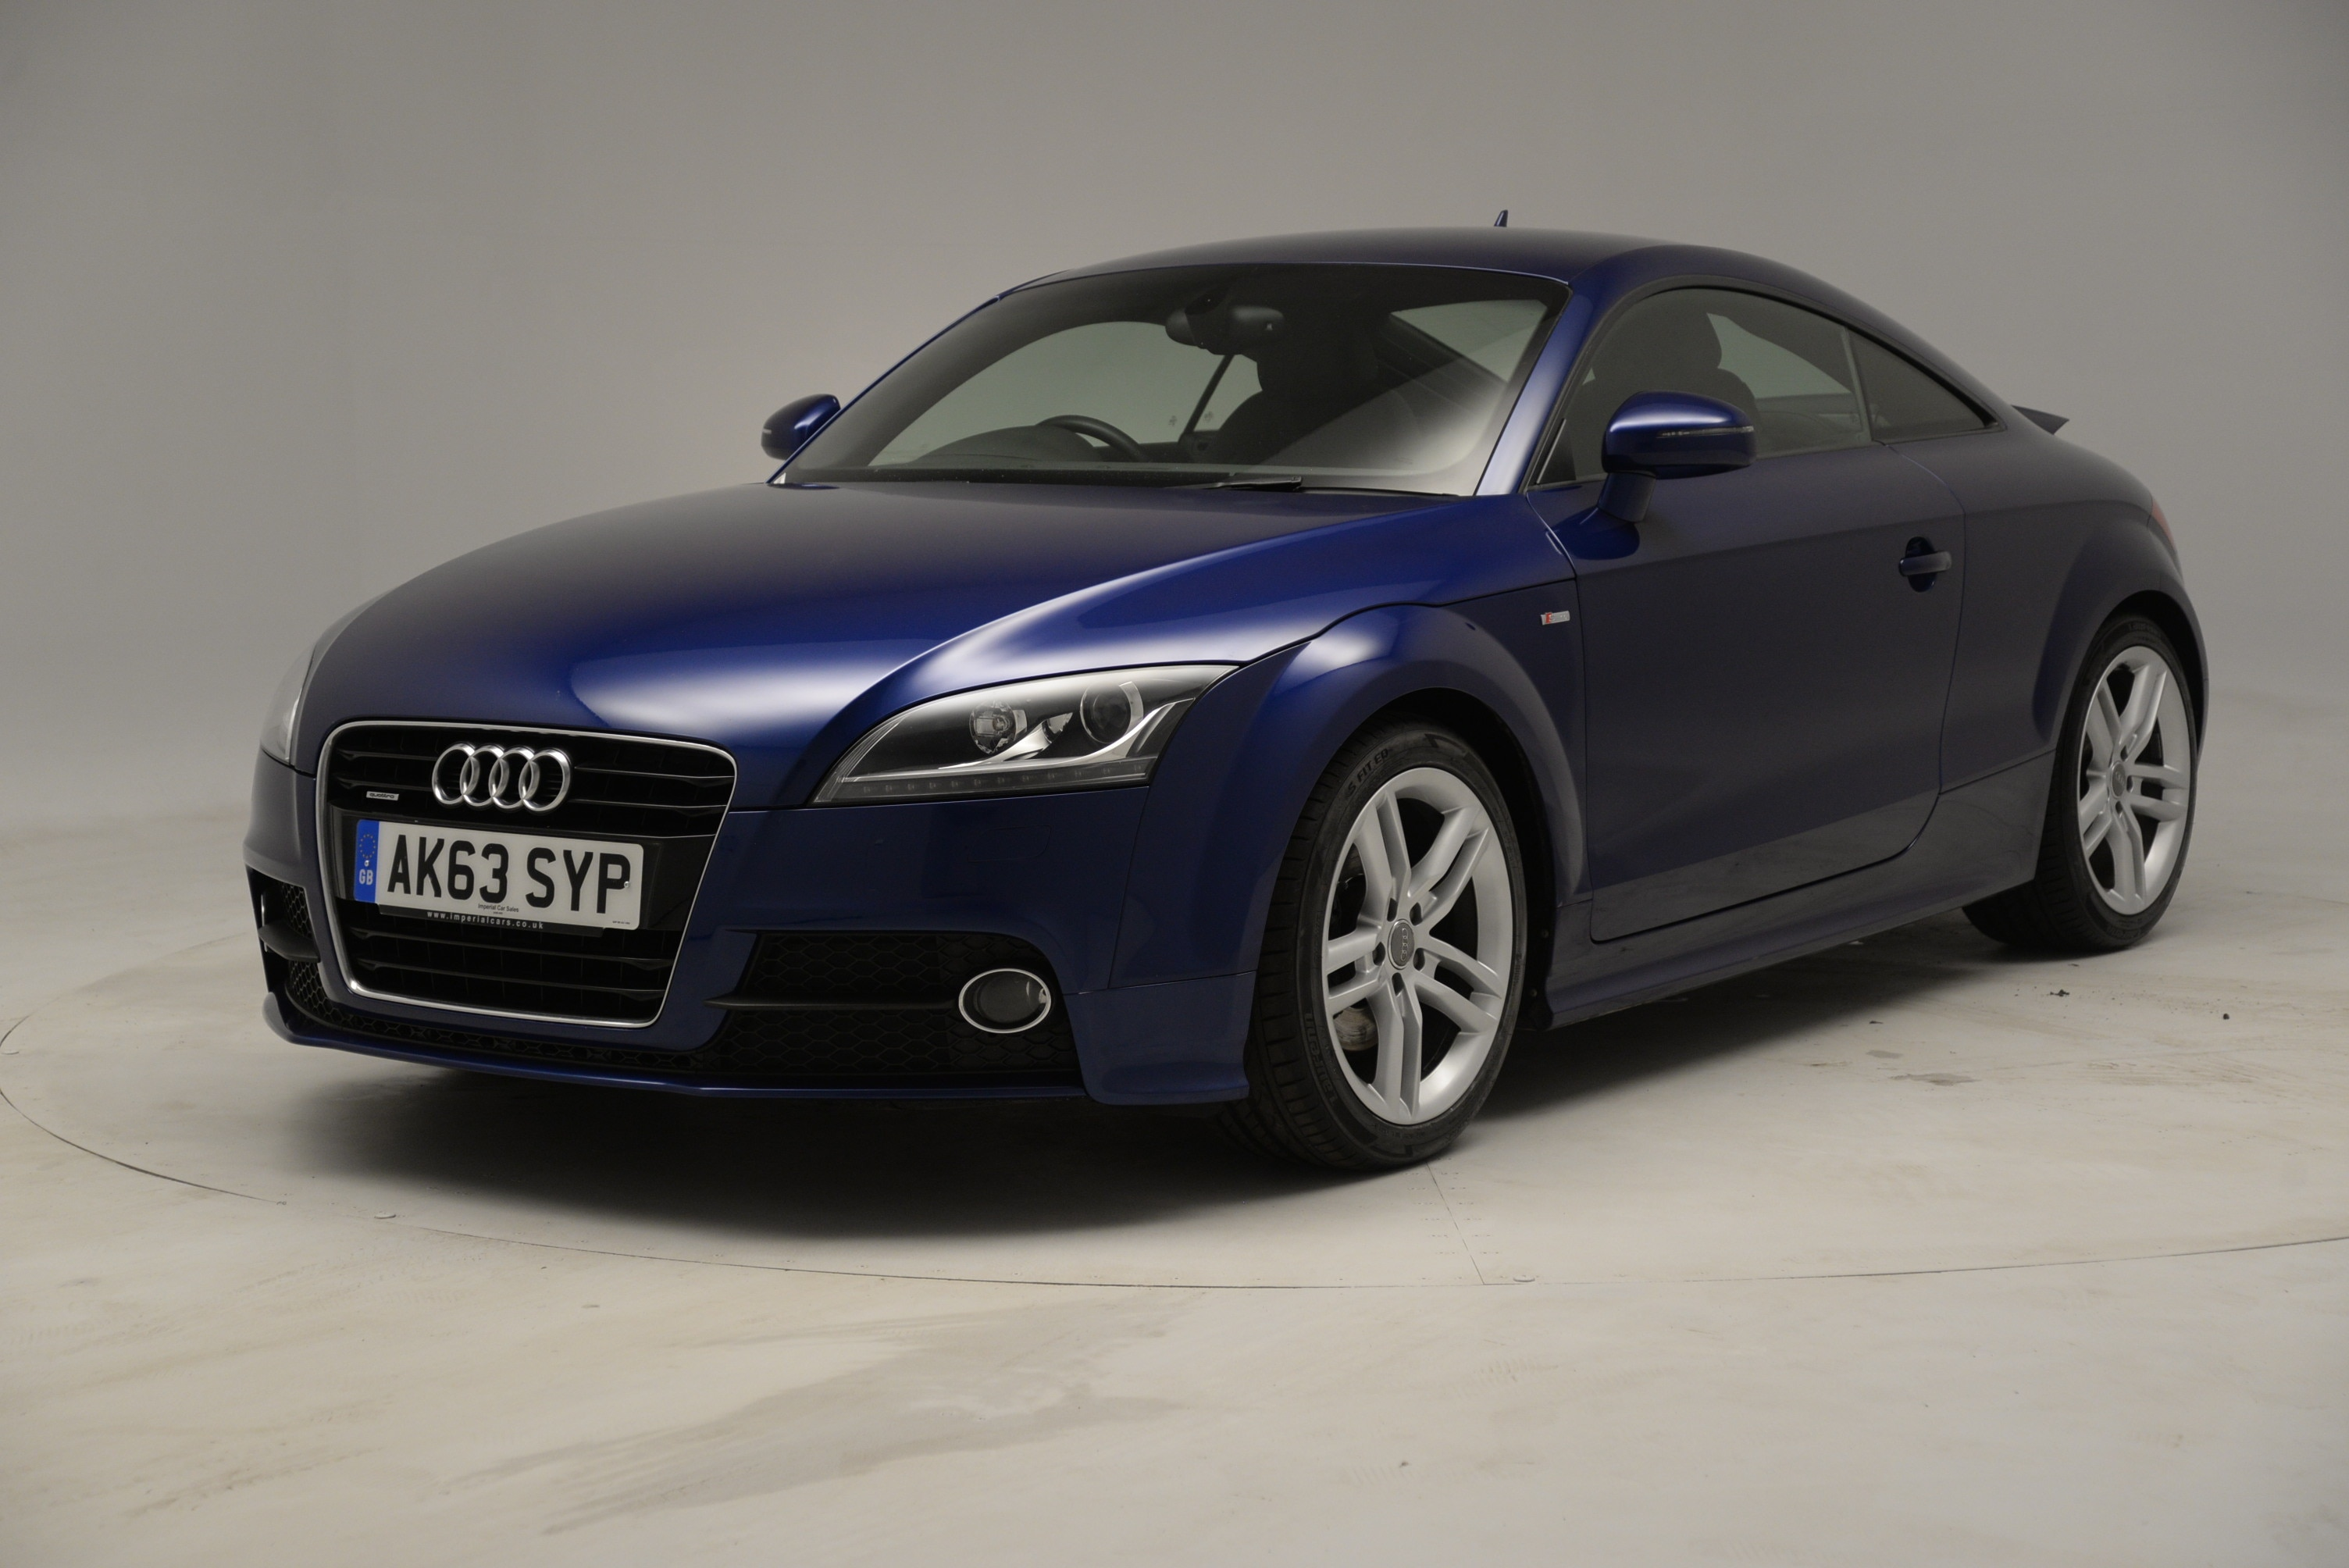 Used Audi TT Cars for Sale